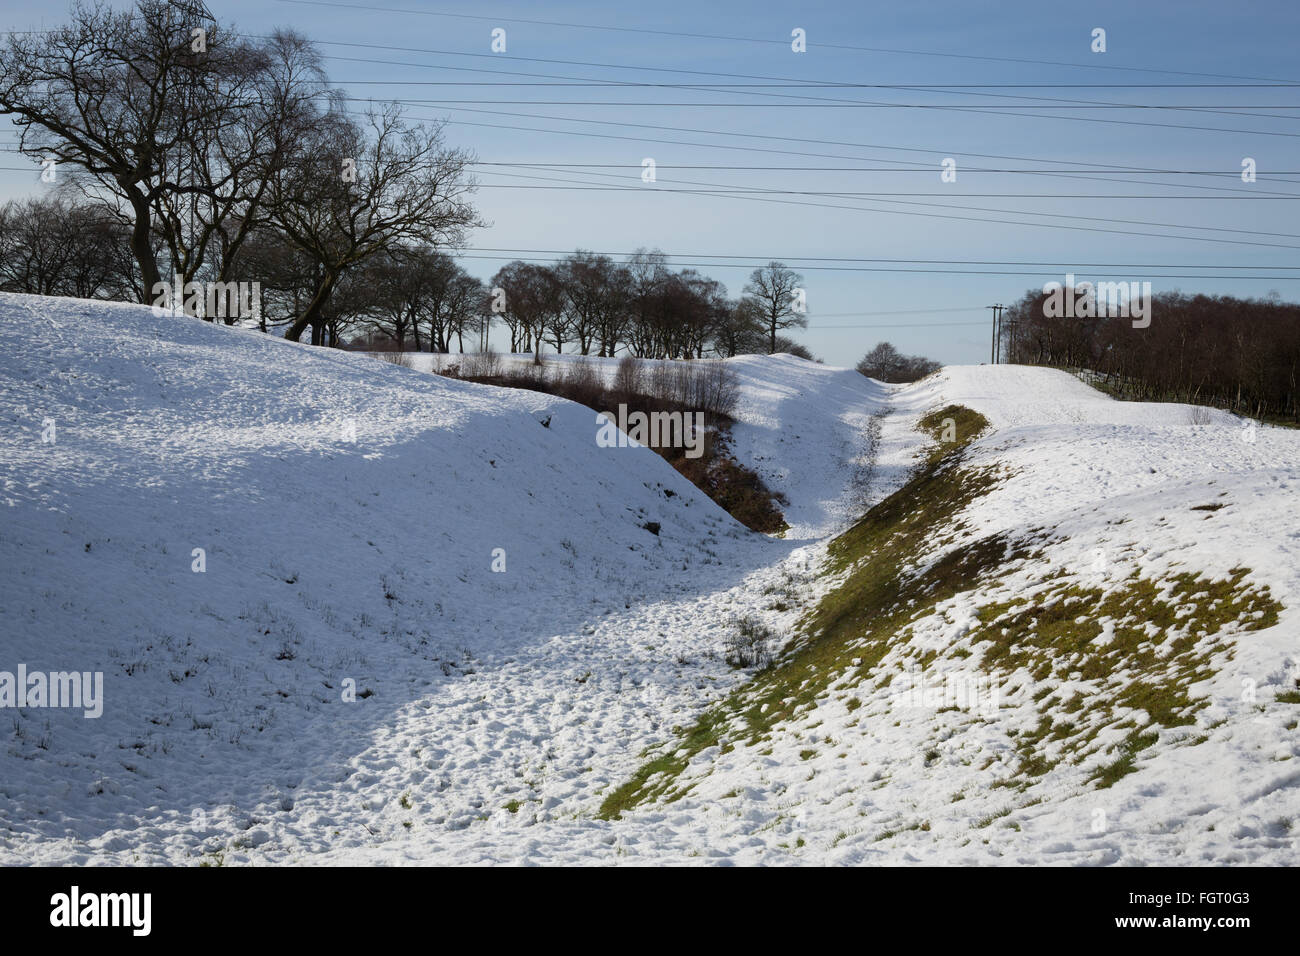 Ditch of the Roman era Antonine Wall, near Rough Castle Roman fort, in Falkirk, Scotland. - Stock Image